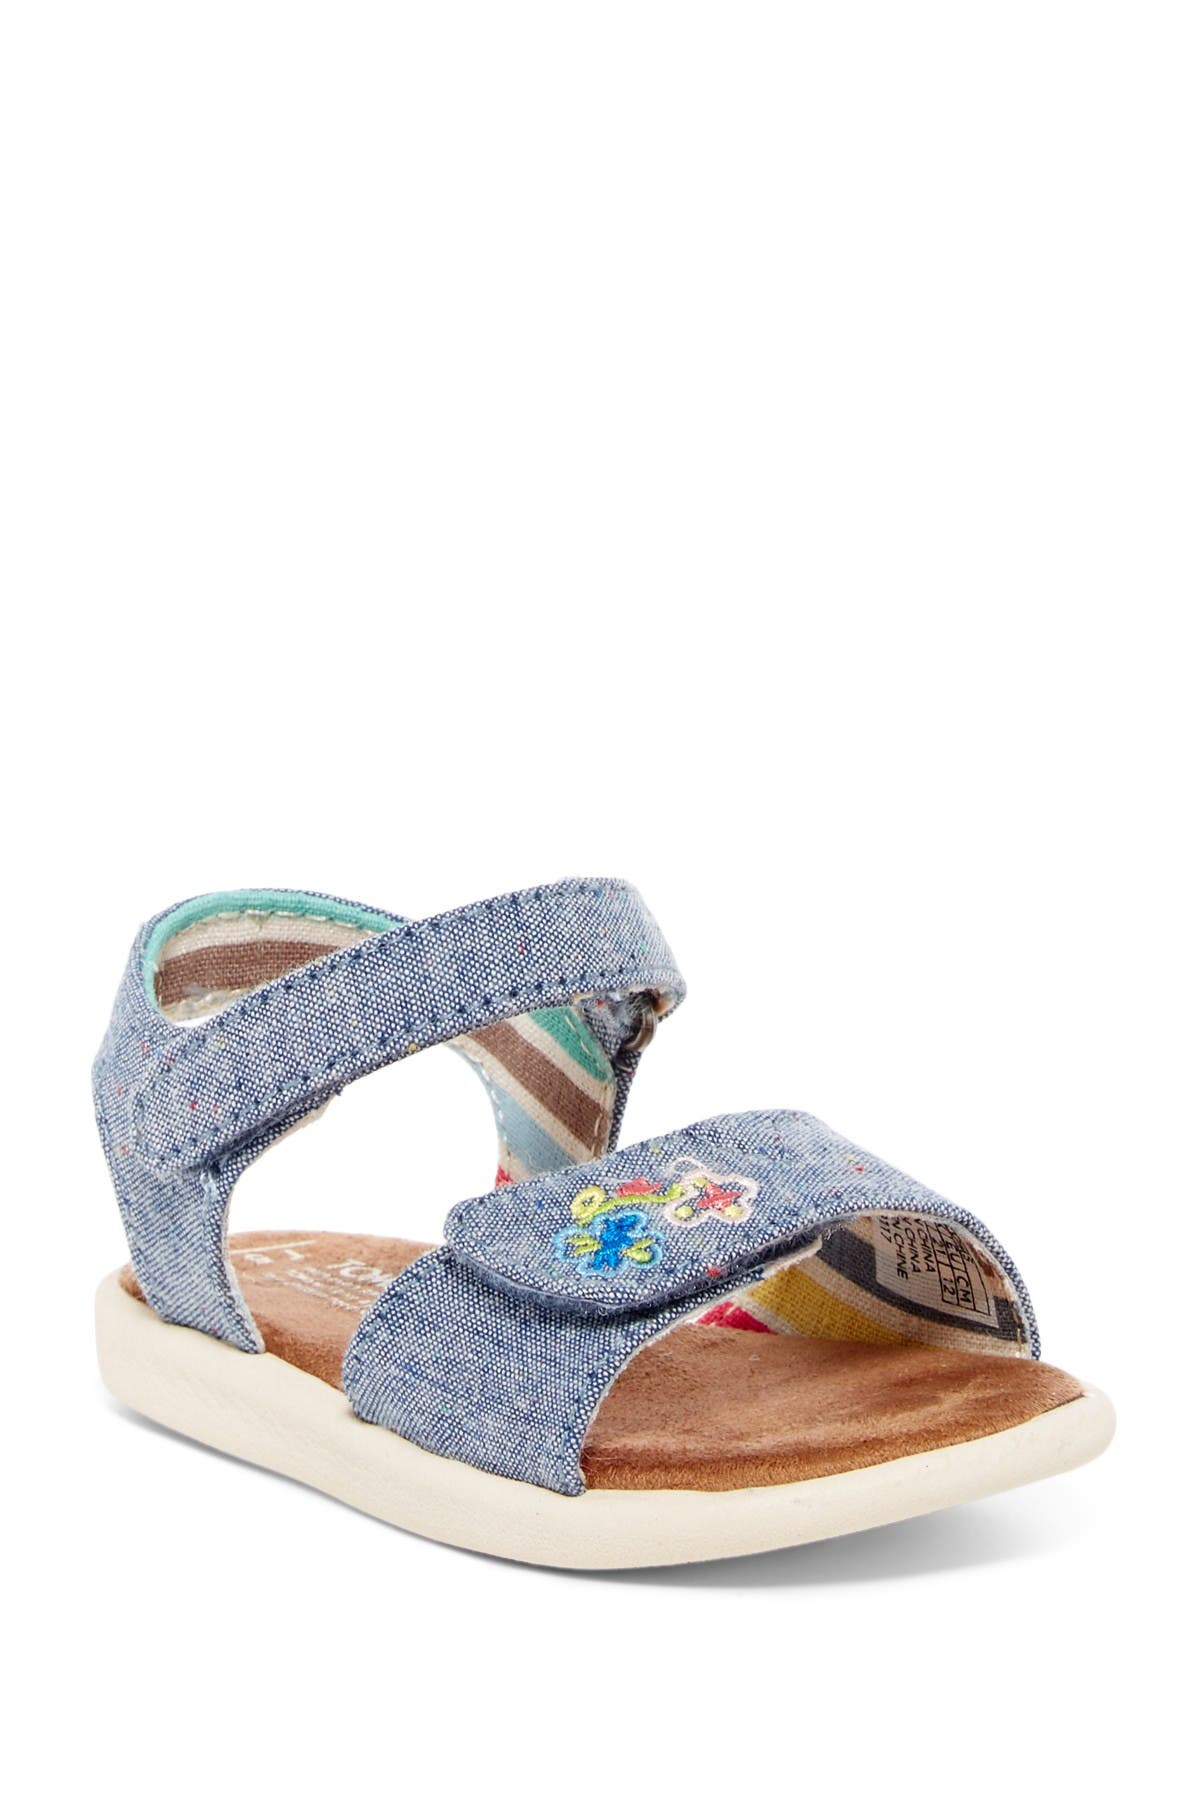 Image of TOMS Sparkle Chambray Strap Sandal